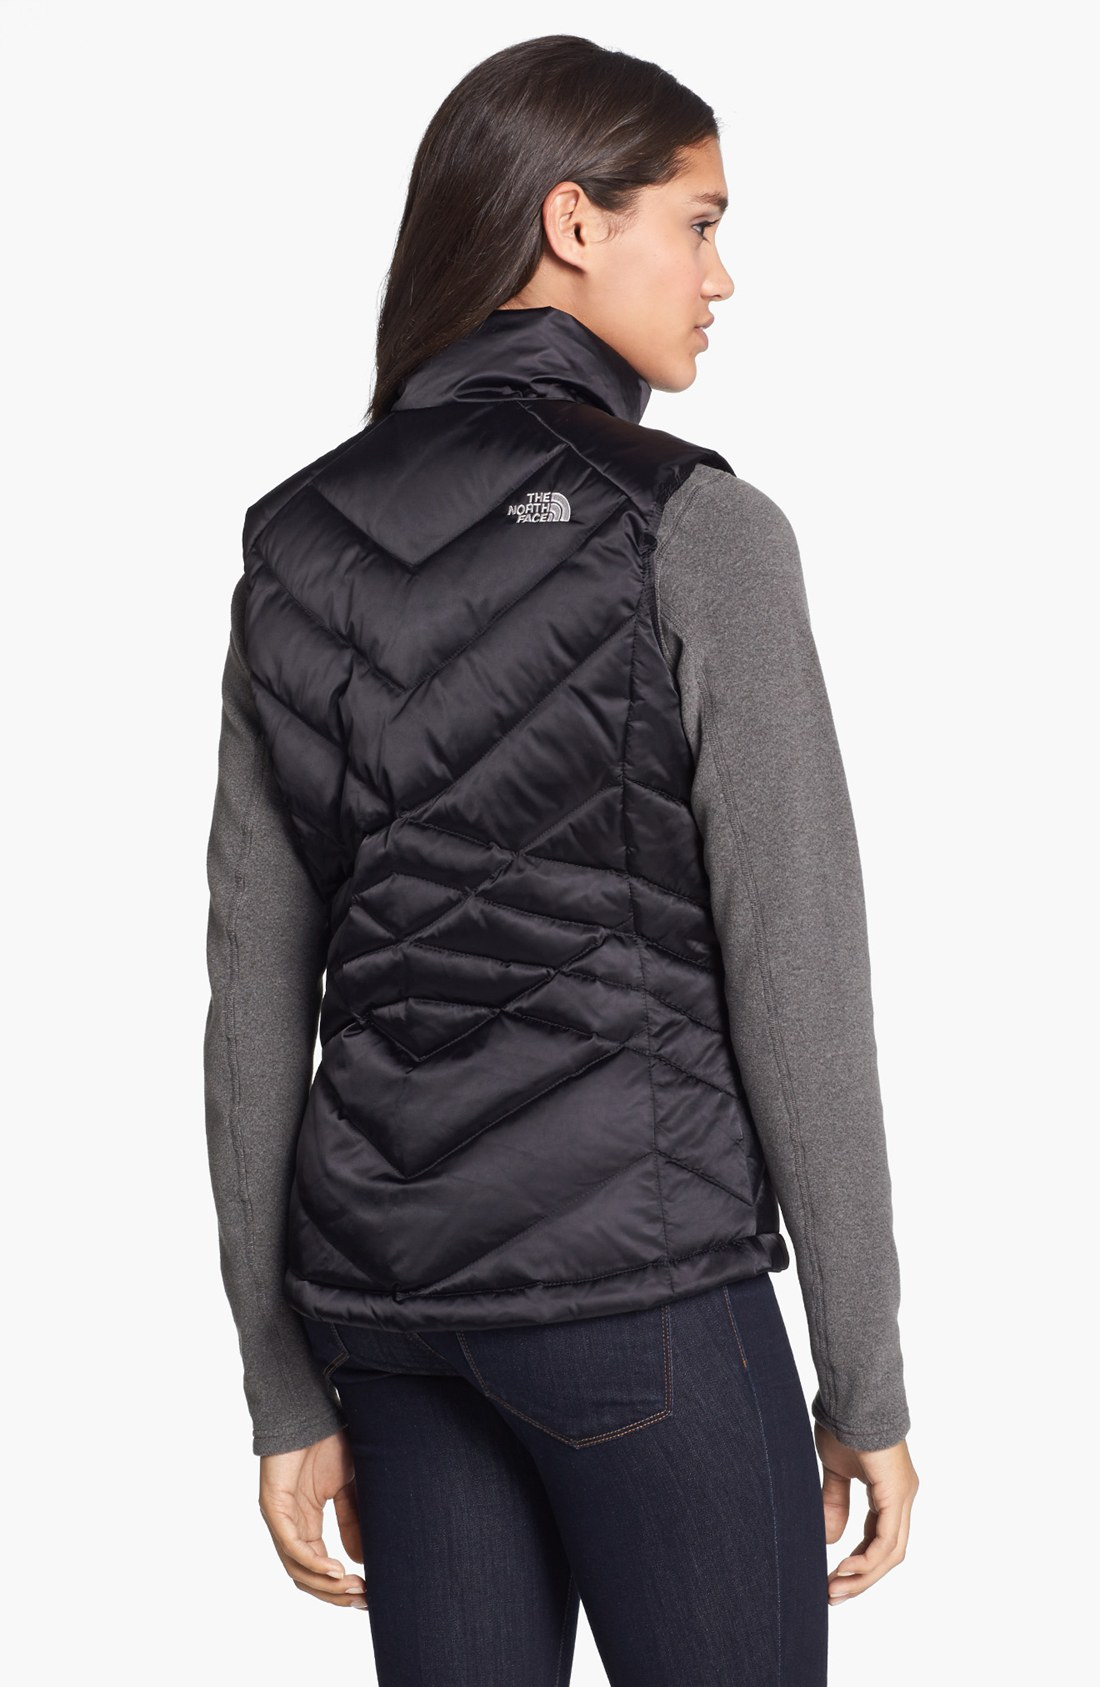 Cyber Monday North Face Nuptse Goose Down Black Jackets off north face, amazing price,i like it Save Up To Mens The North Face Lifestyle Jacket Coal Black north face down jacket - Google-søgning featuring polyvore, women's fashion, clothing, outerwear, jackets, the north face, down jacket, down filled jacket and the north face jackets See more.